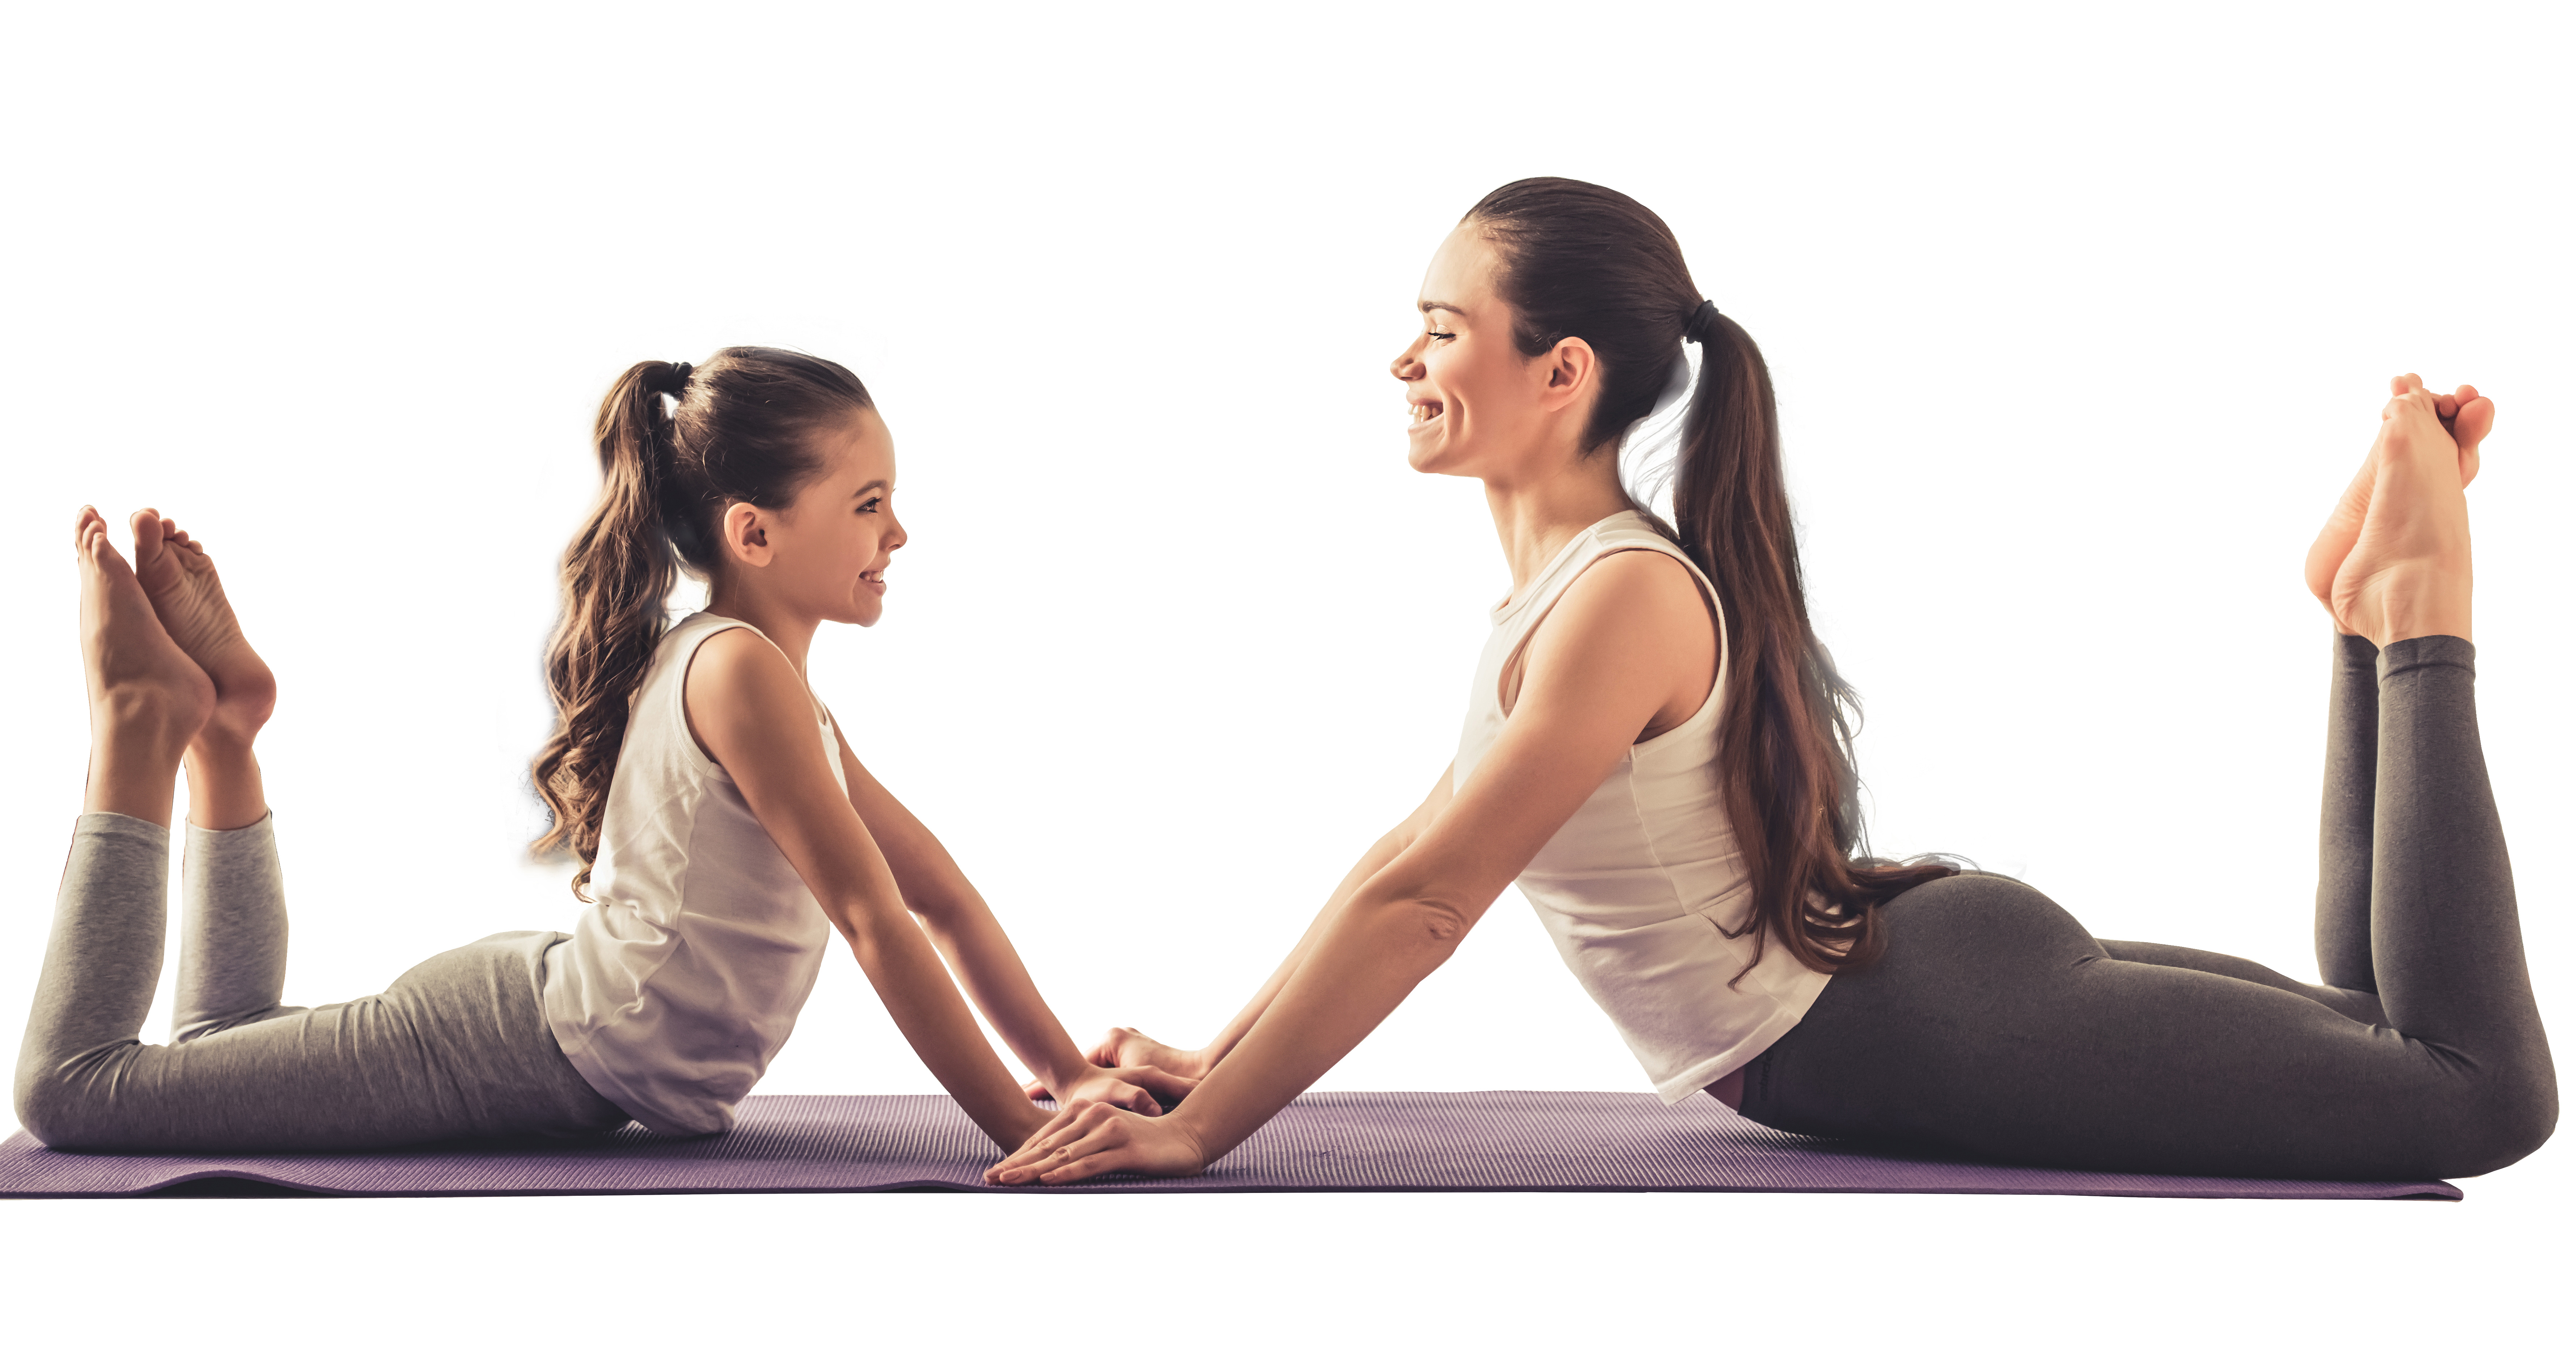 Mom and Daughter practicing yoga together